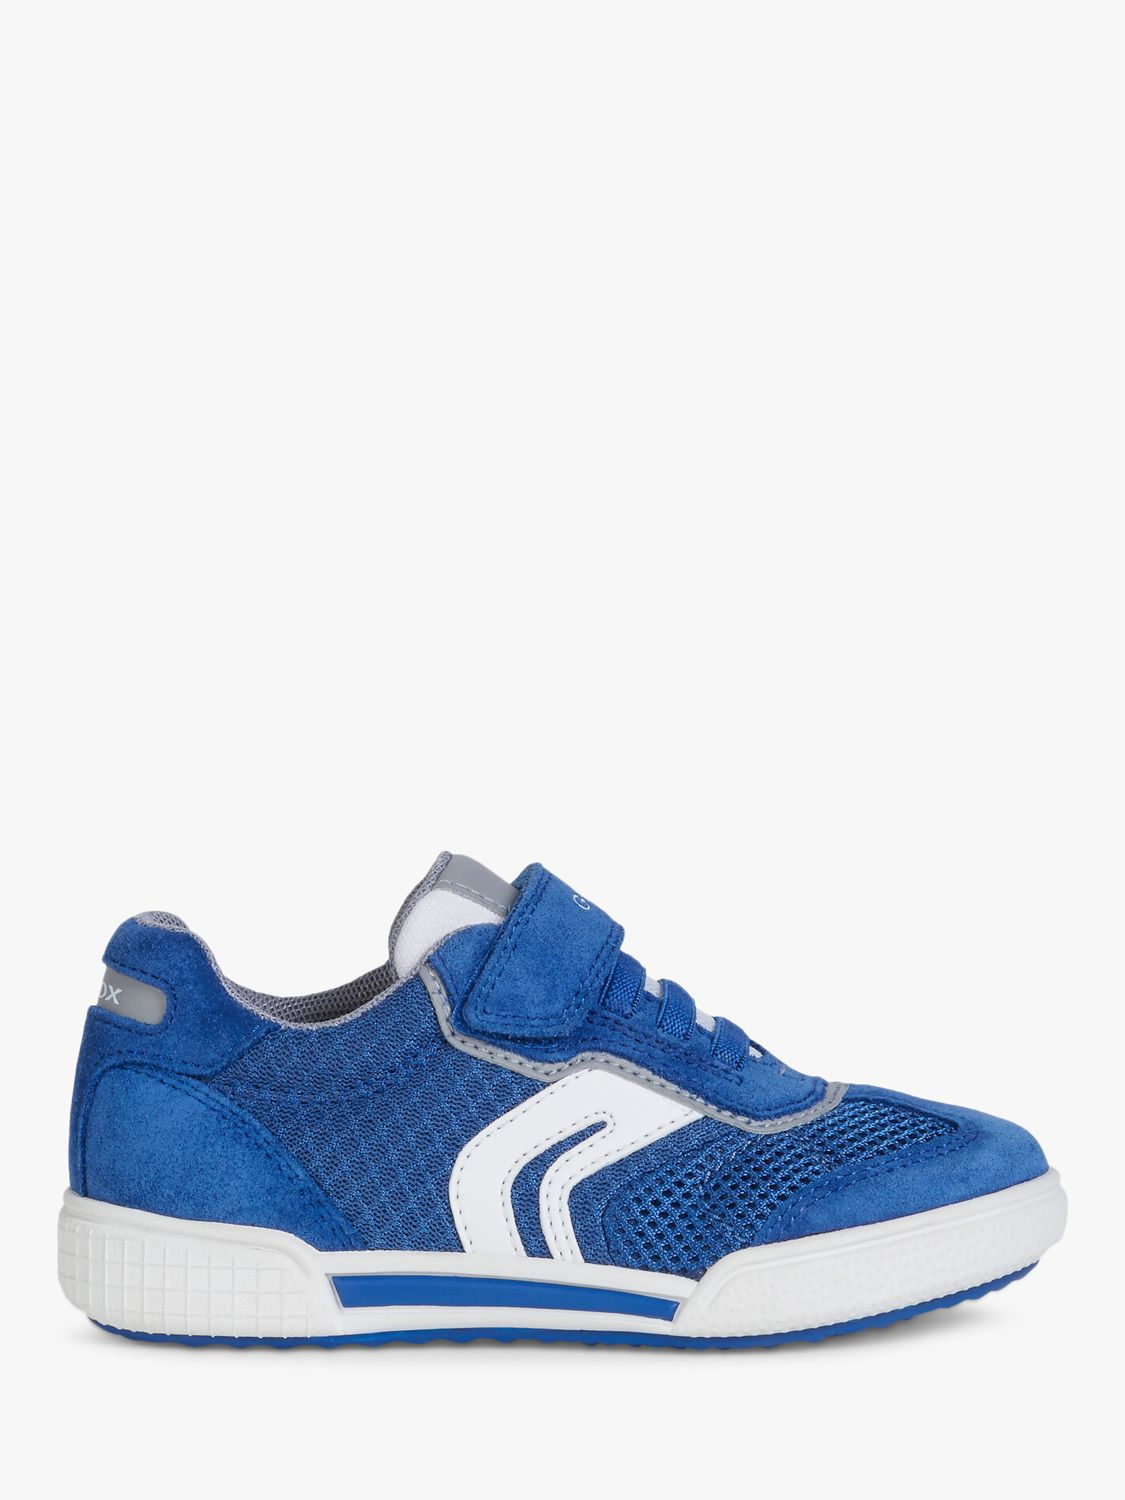 Geox Geox Children's Poseido Trainers, Royal/Grey